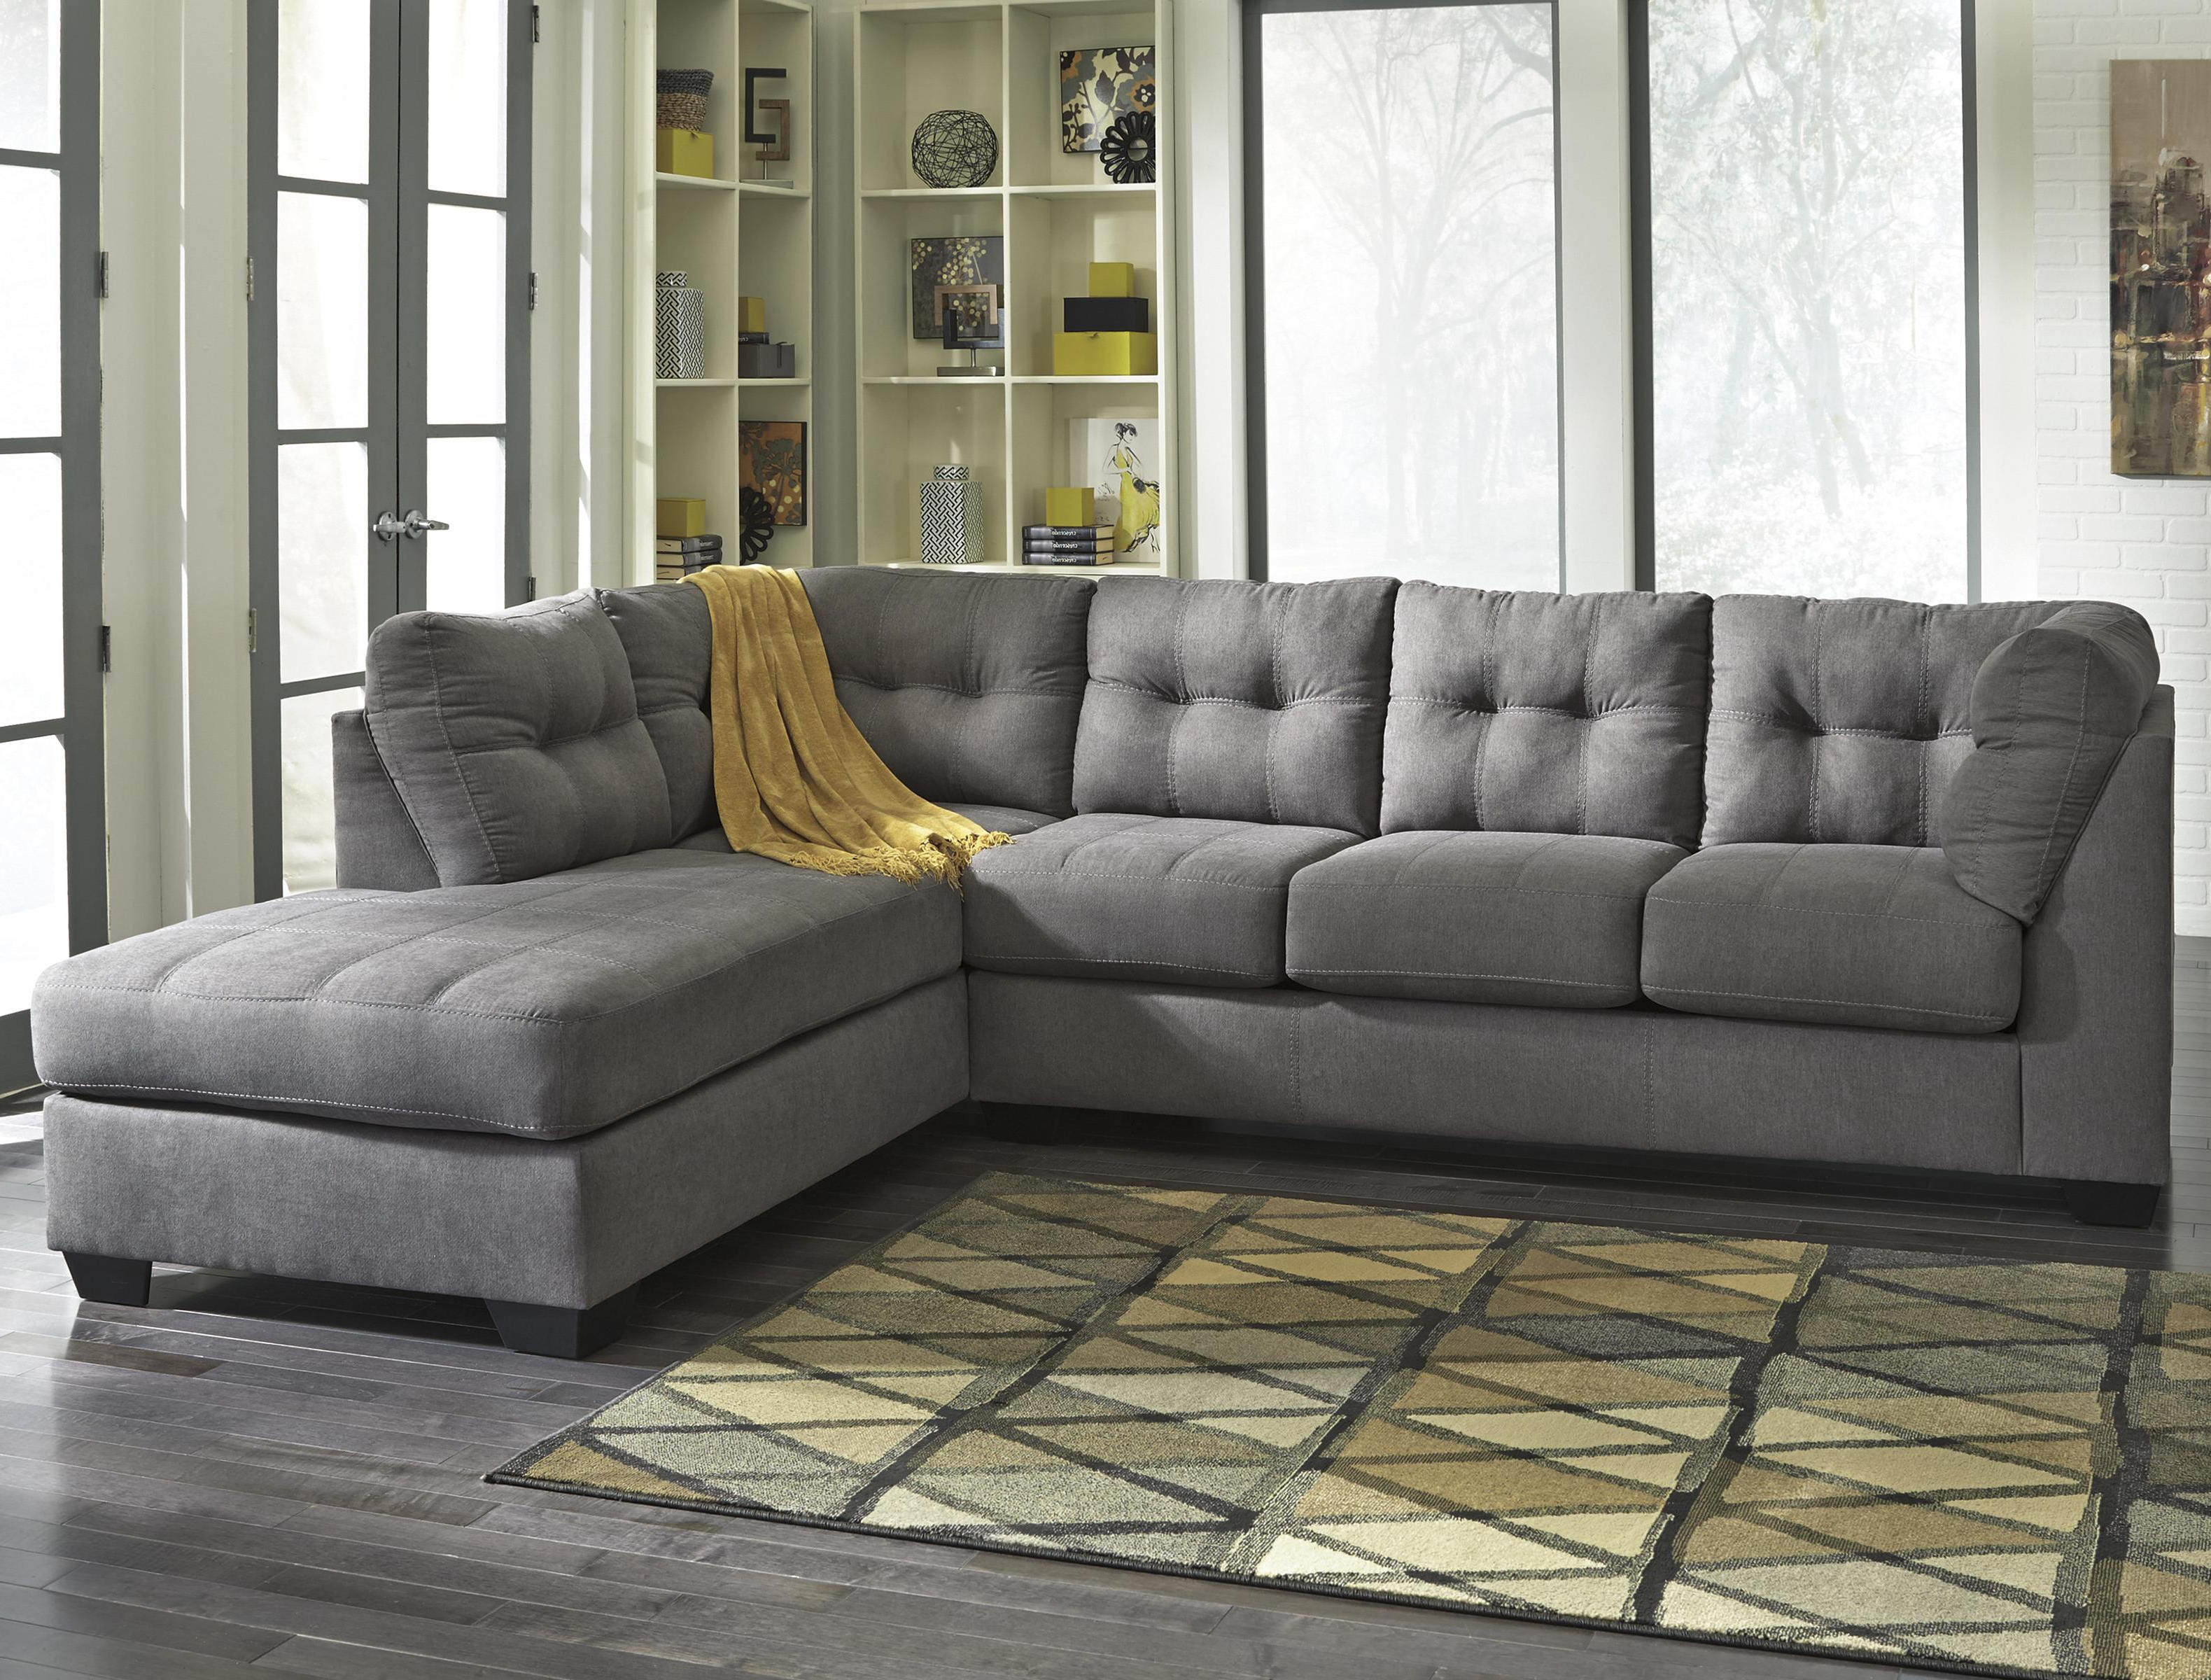 Newest Benchcraft Maier – Charcoal 2 Piece Sectional With Right Chaise Intended For Sierra Foam Ii 3 Piece Sectionals (View 10 of 20)